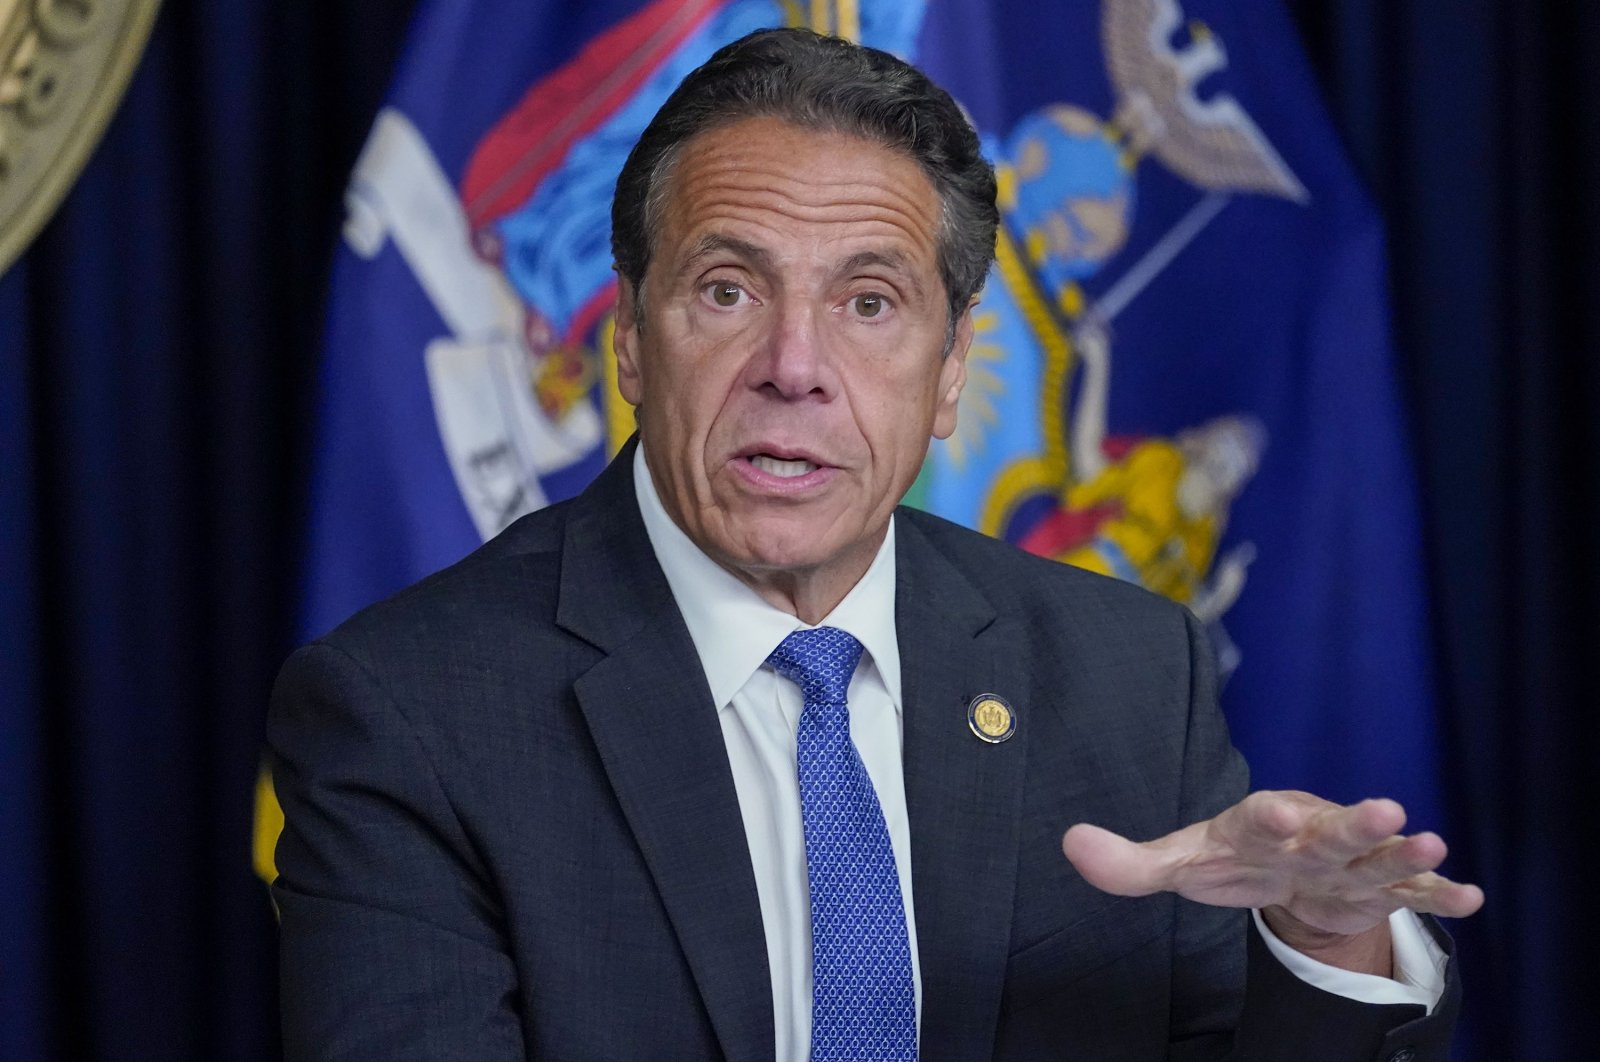 New York Gov. Andrew Cuomo speaks during a news conference in New York, U.S., June 23, 2021. (AP Photo)